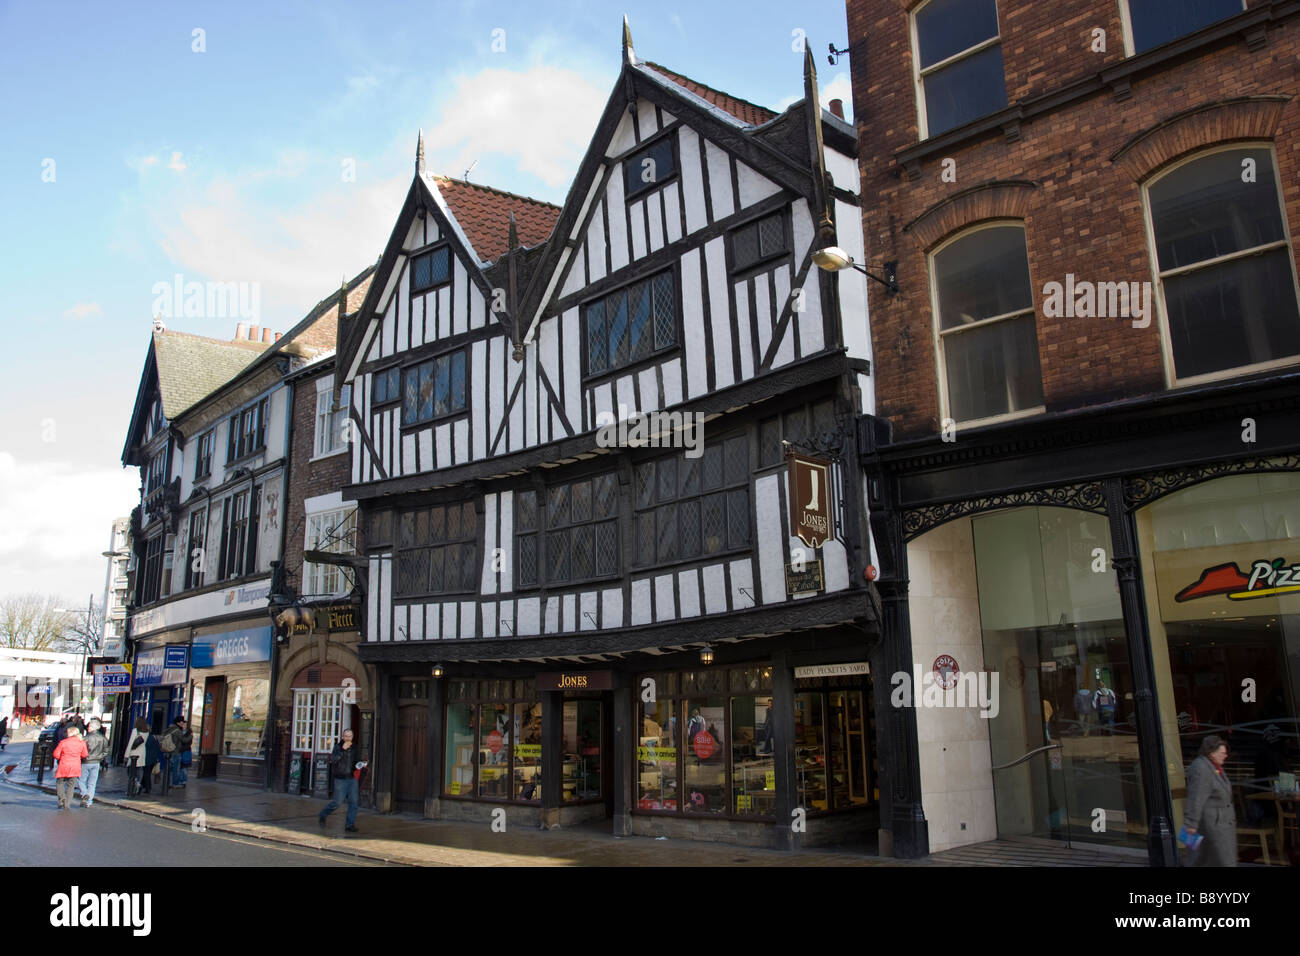 Tudor Facade old wooden tudor style fronted facade on shop front that sells